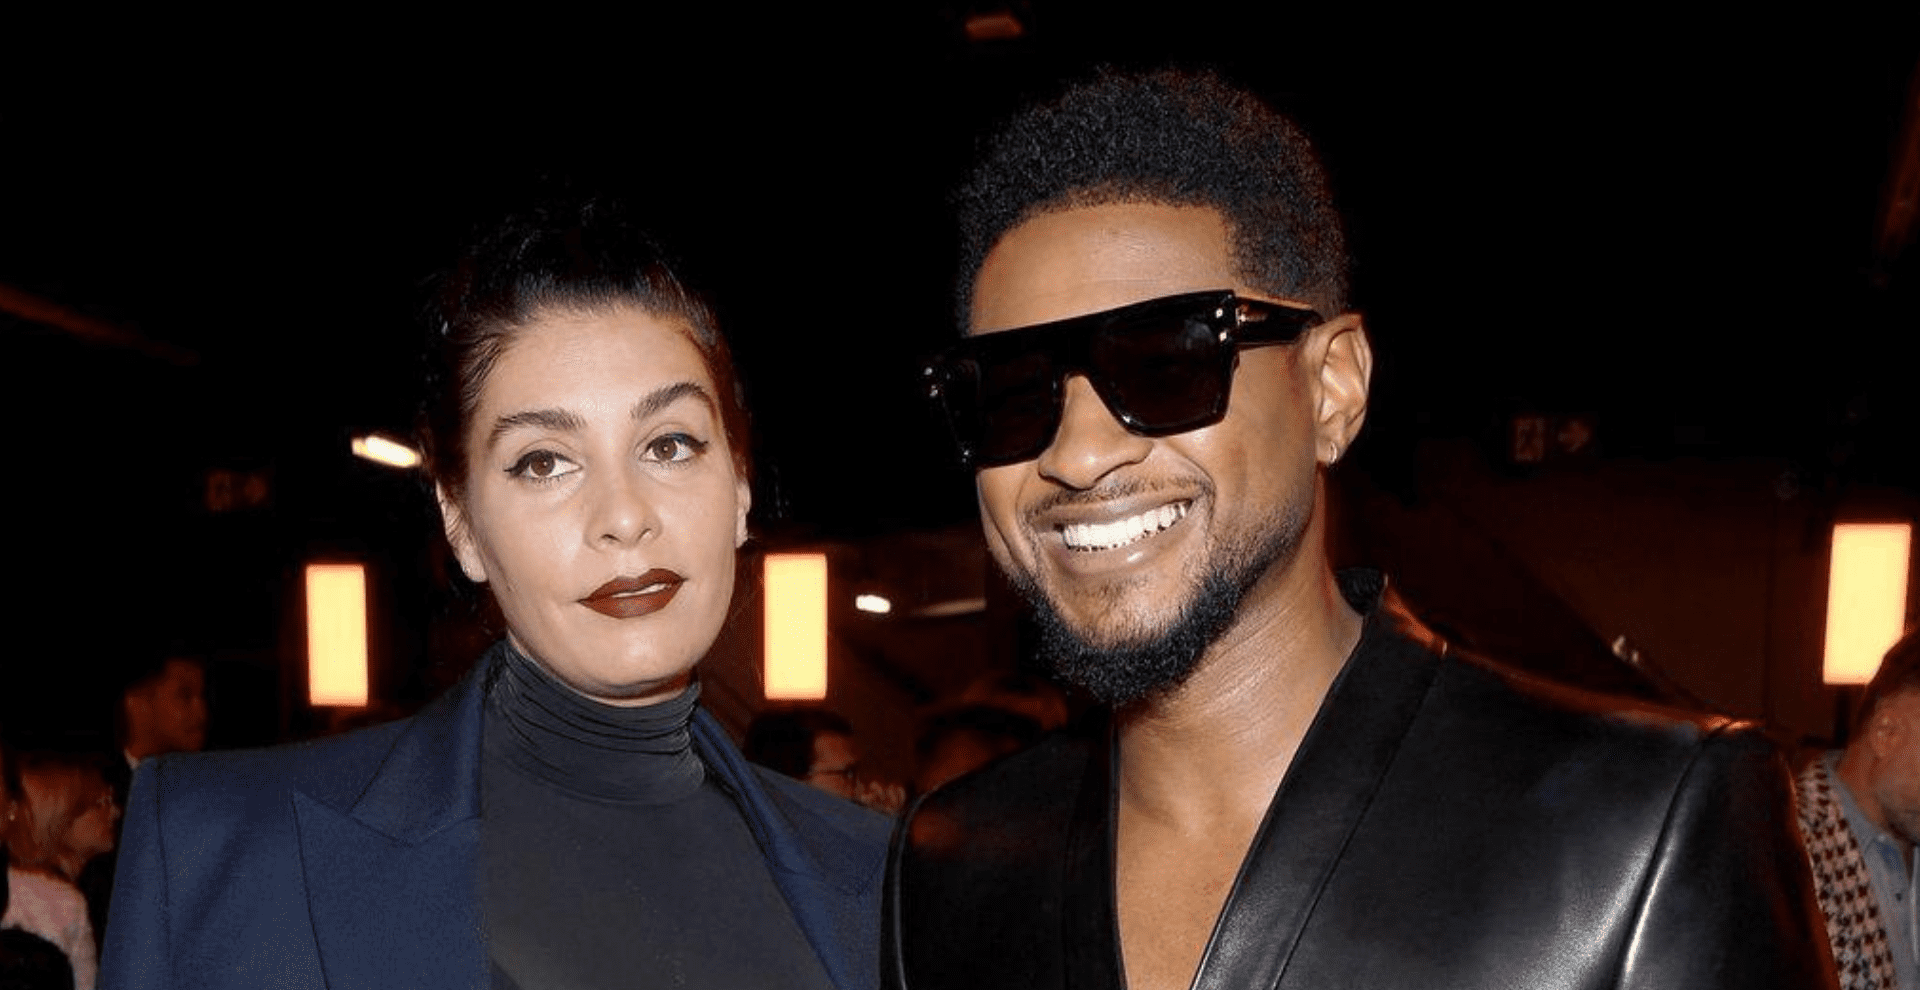 Jenn Goicoechea and Usher attend the Balmain show as part of the Paris Fashion Week Womenswear Fall/Winter 2020/2021 on February 28, 2020 in Paris, France. (Photo by Pascal Le Segretain/Getty Images)